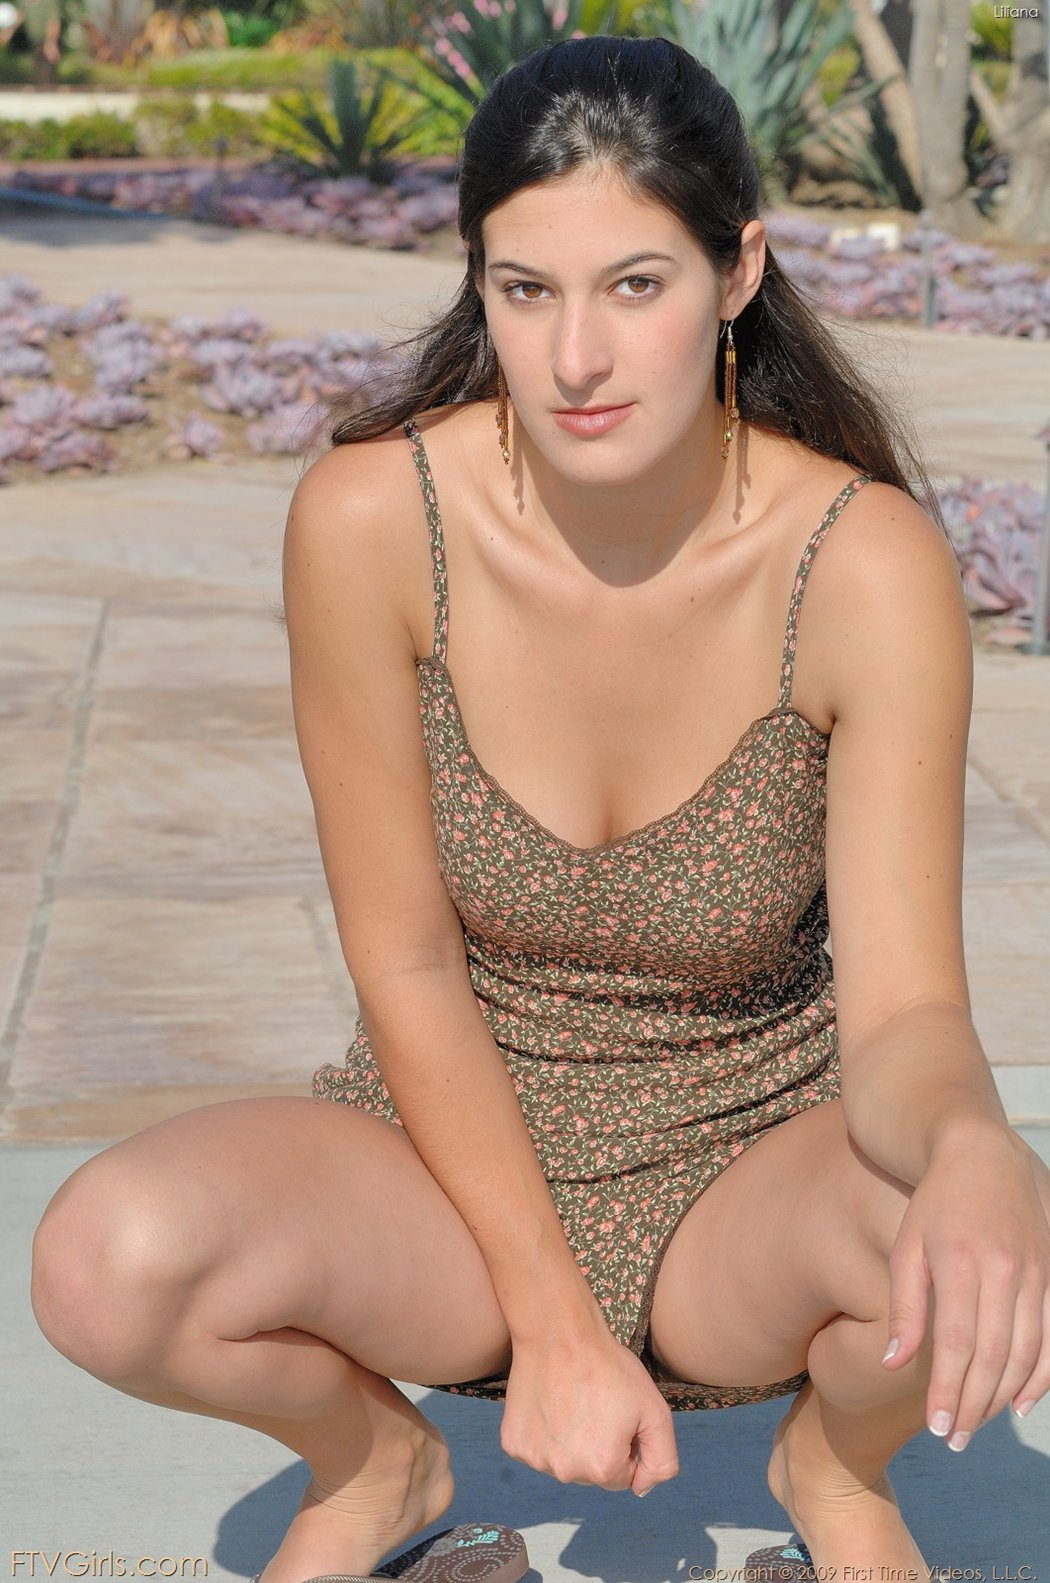 Nude liliana model pussy seems